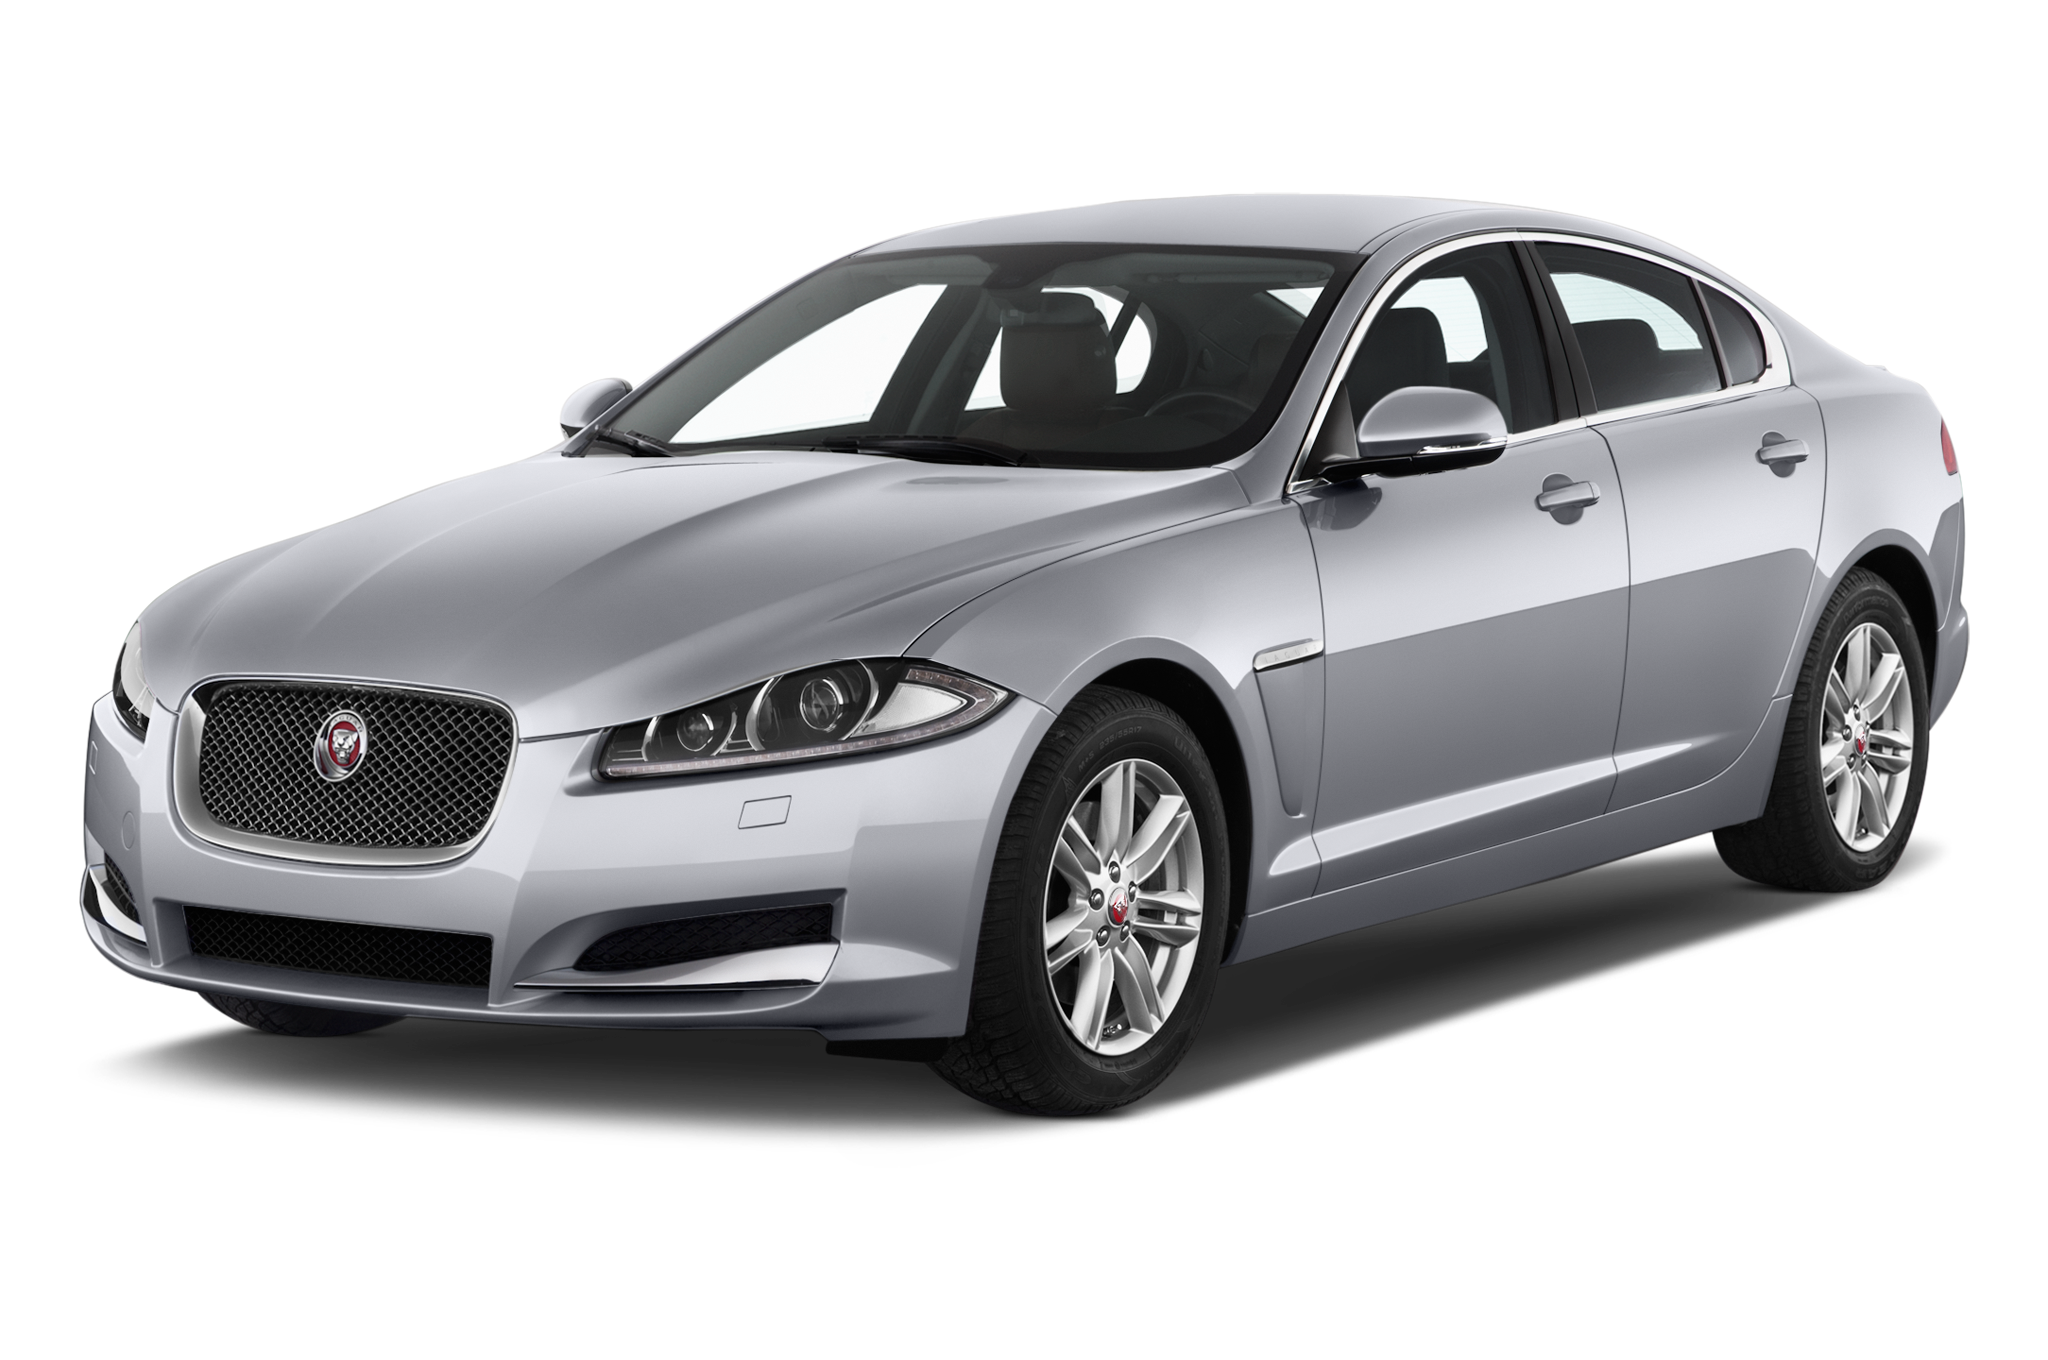 Next Generation Jaguar Xf >> Next-Generation Jaguar XF Spied Under Heavy Camouflage